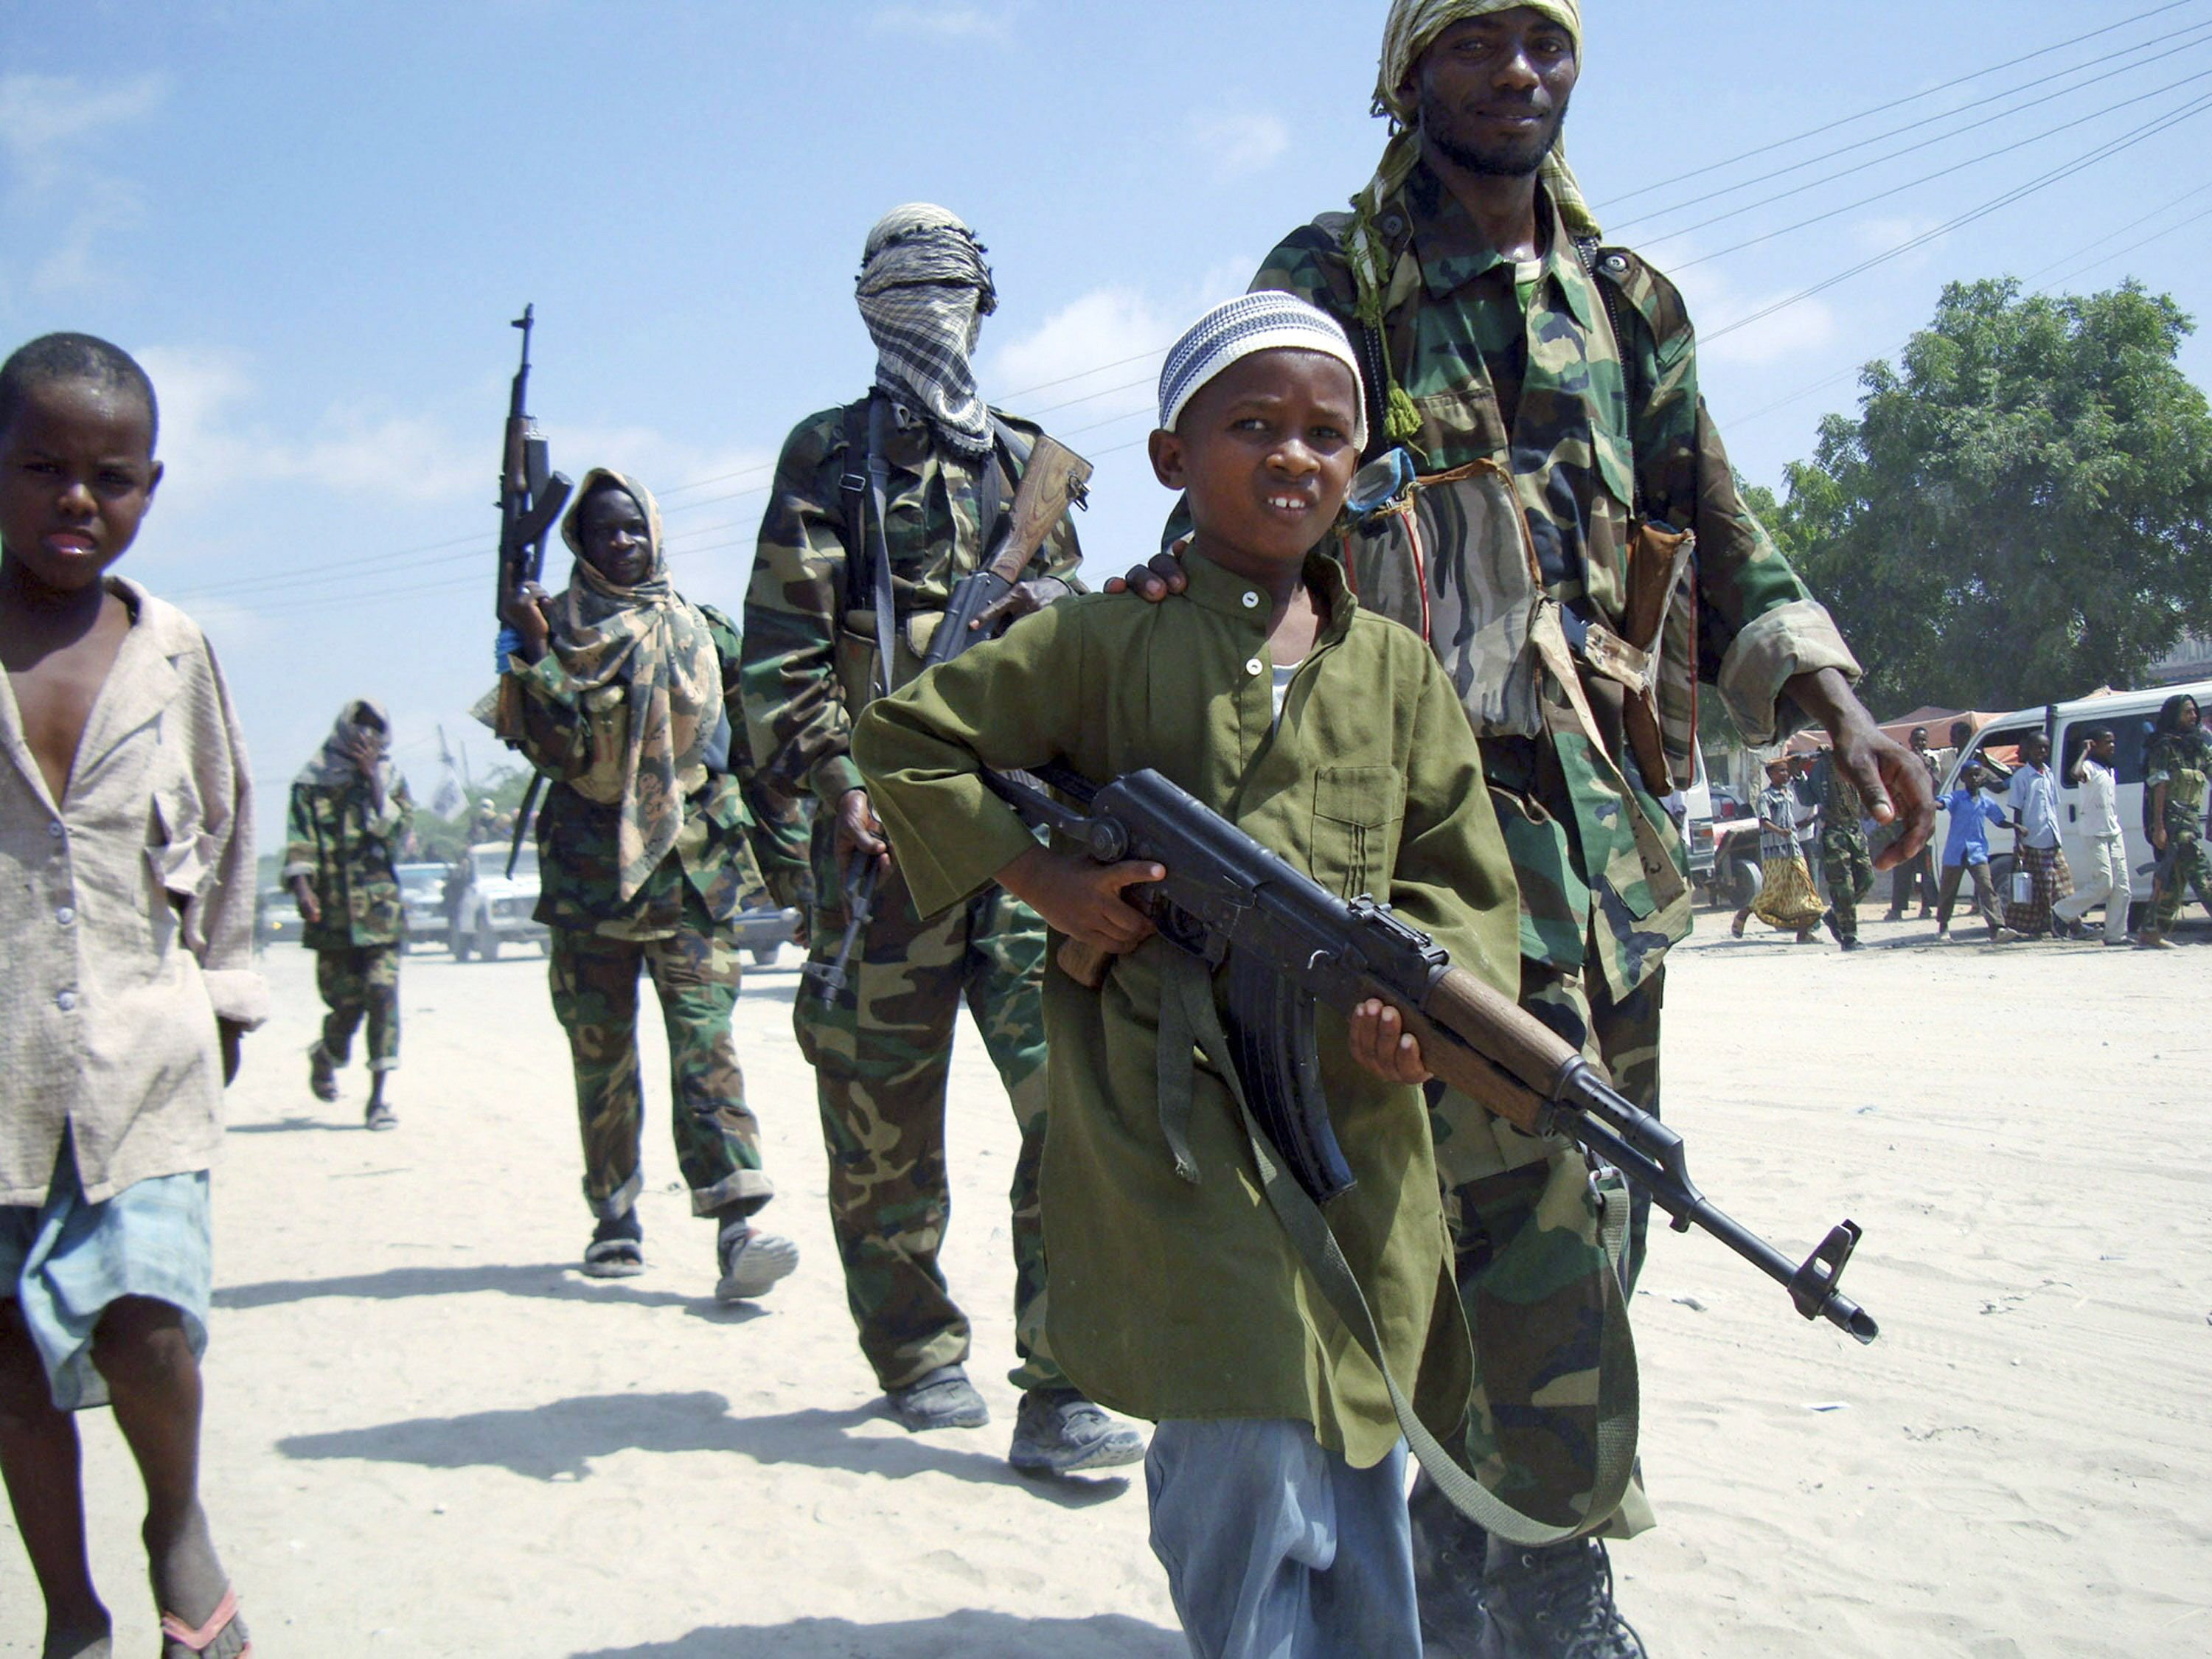 Africa providing 'safe haven' to Islamist terror groups, special forces  commander says - Washington Times